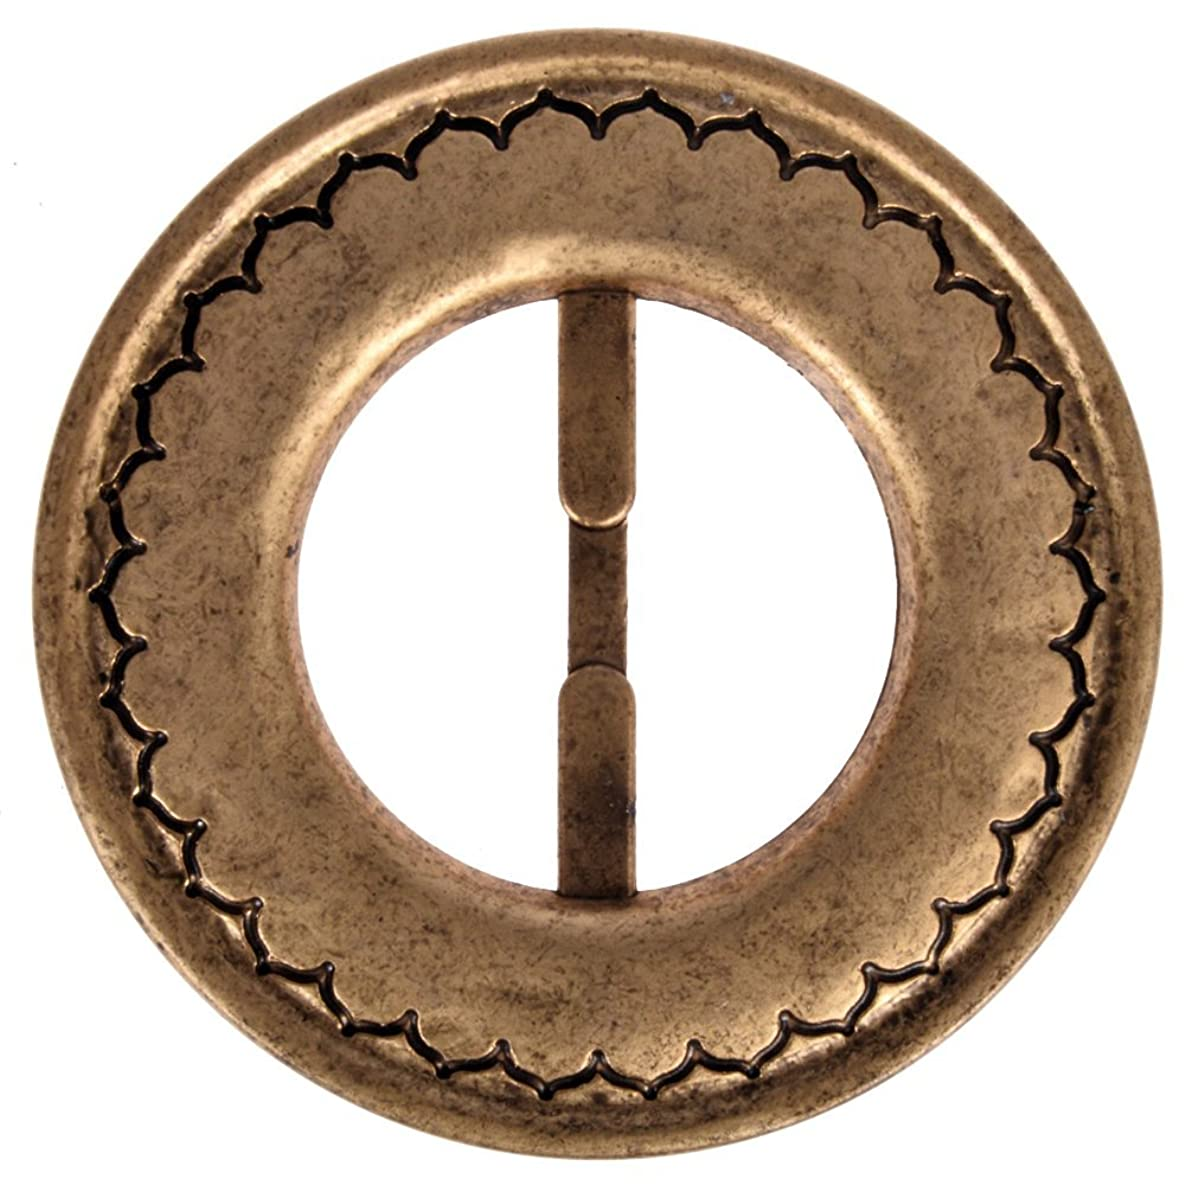 Mibo ABS Metal Plated Buckle Round Shape with Moroccan Design Pattern 30mm Inside Bar Matt Antique Gold